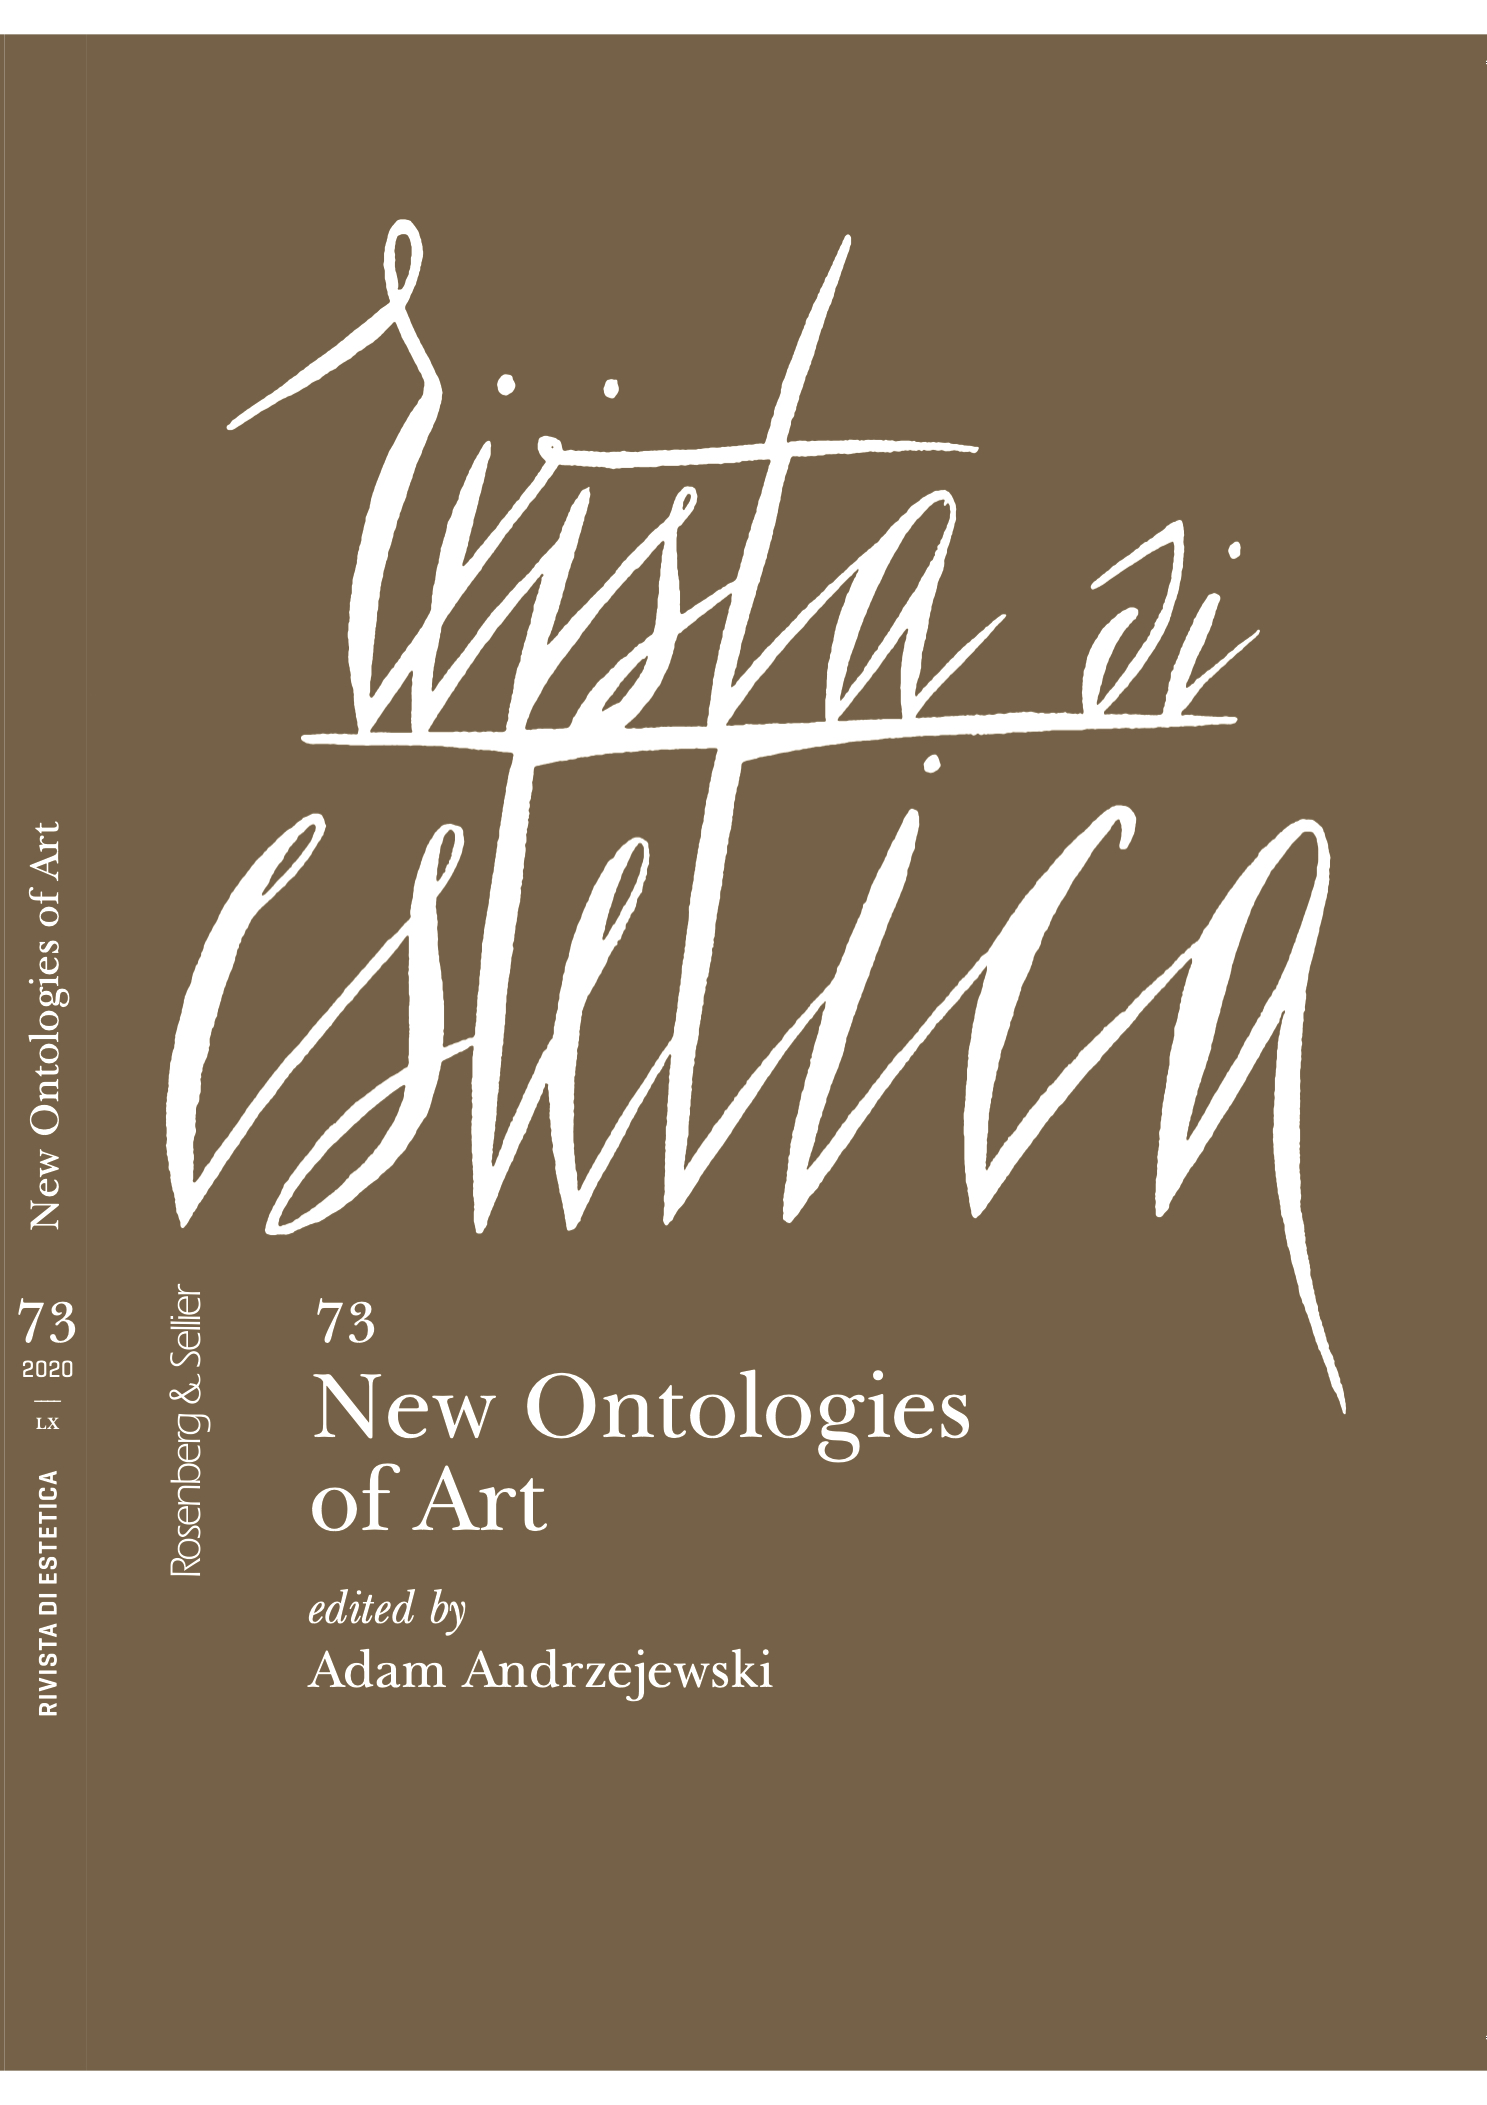 New Ontologies of Art cover